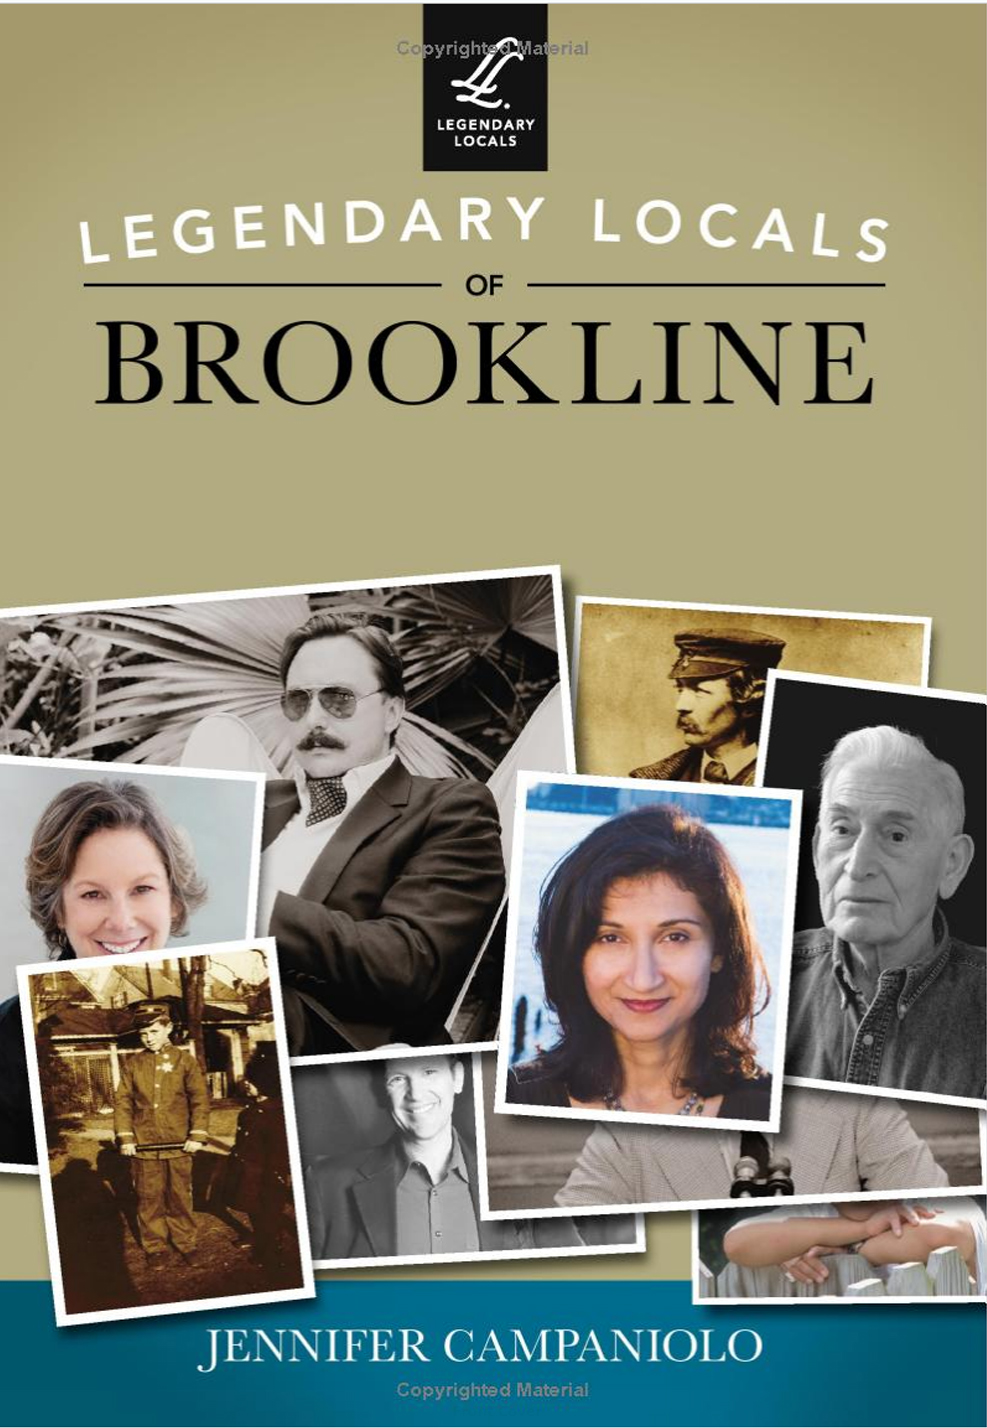 Legendary Locals of Brookline (pg 116)